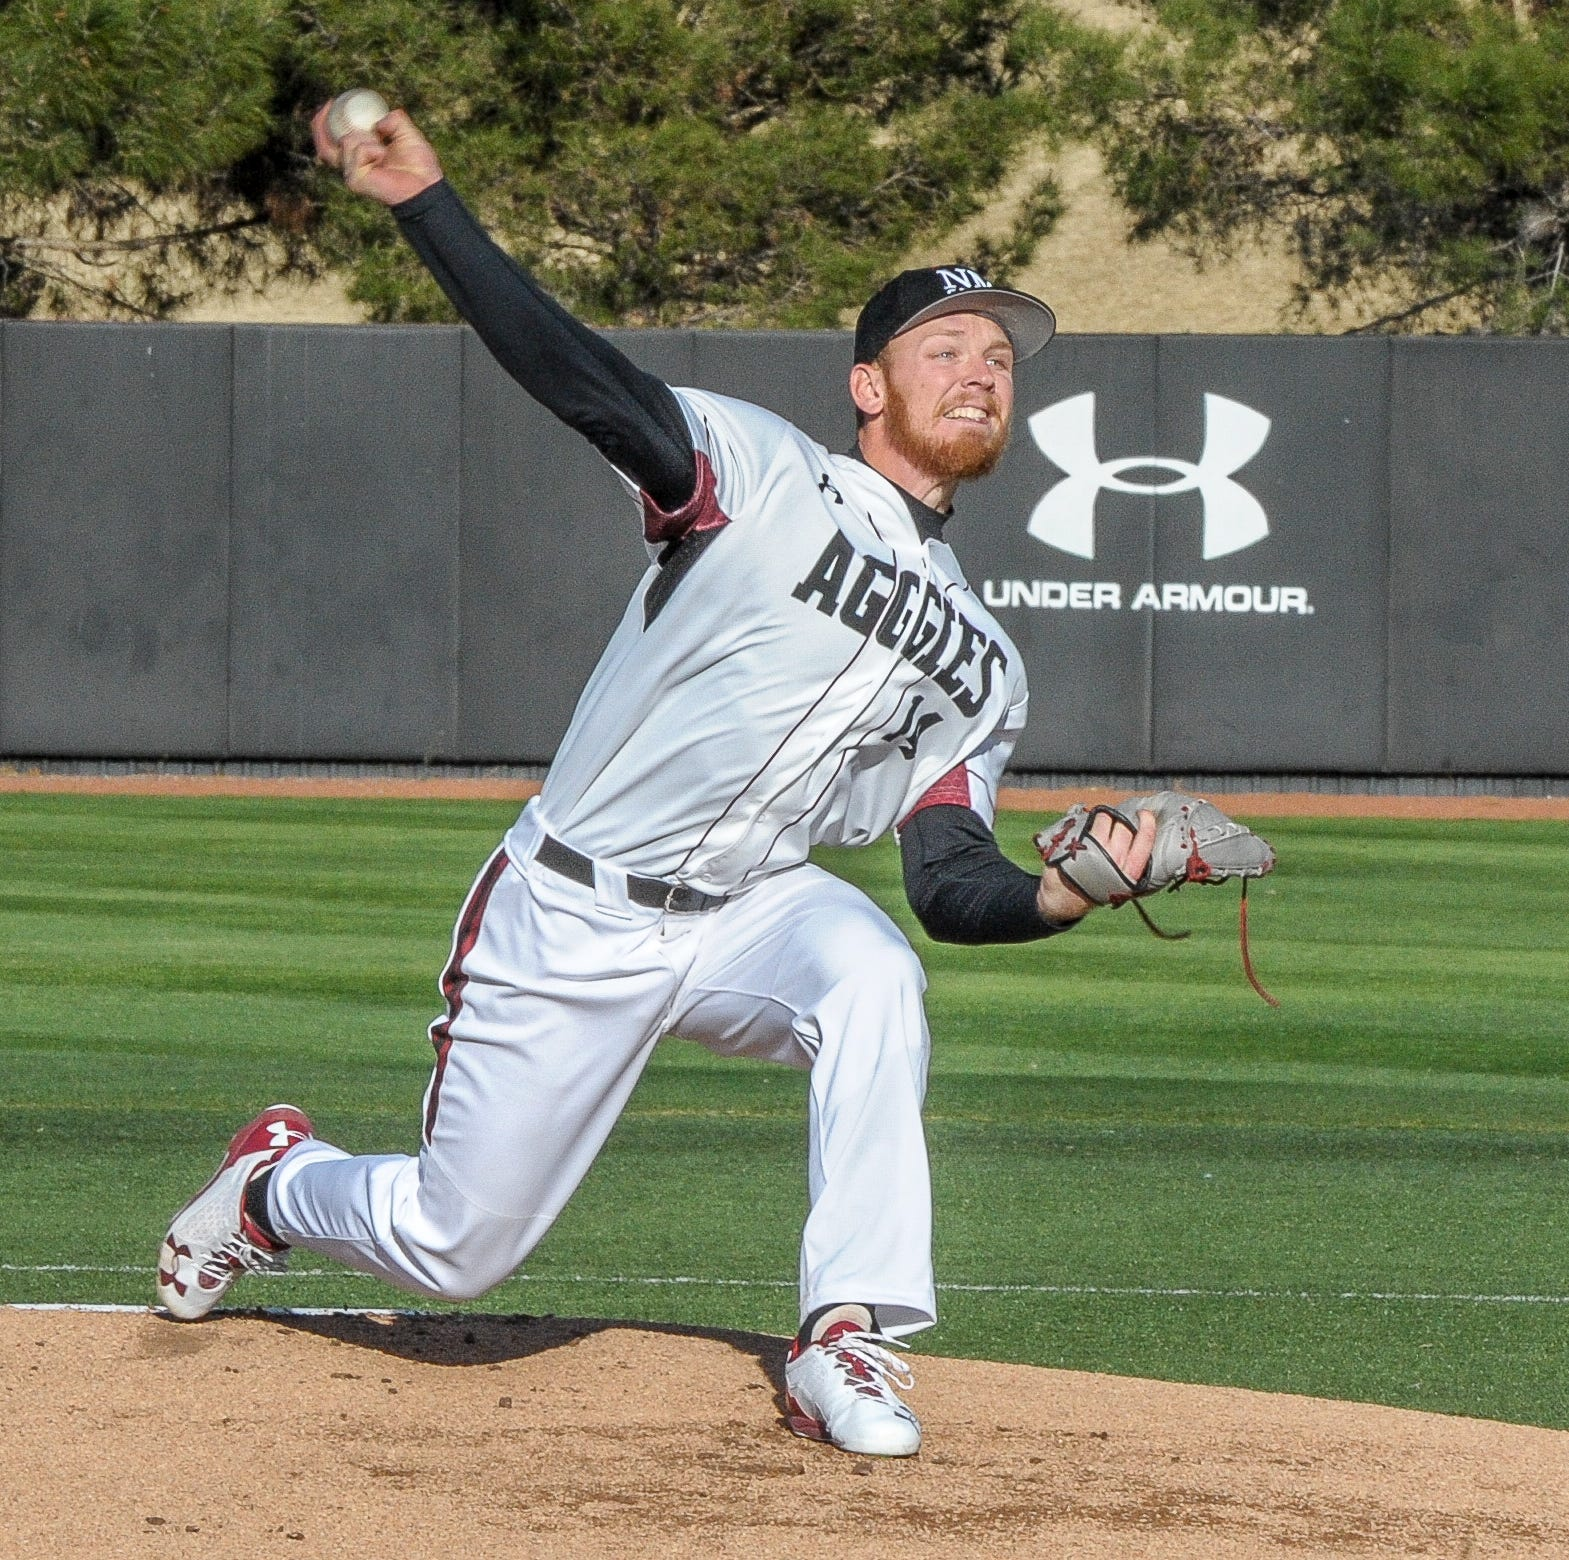 NM State baseball opens season with blowout win